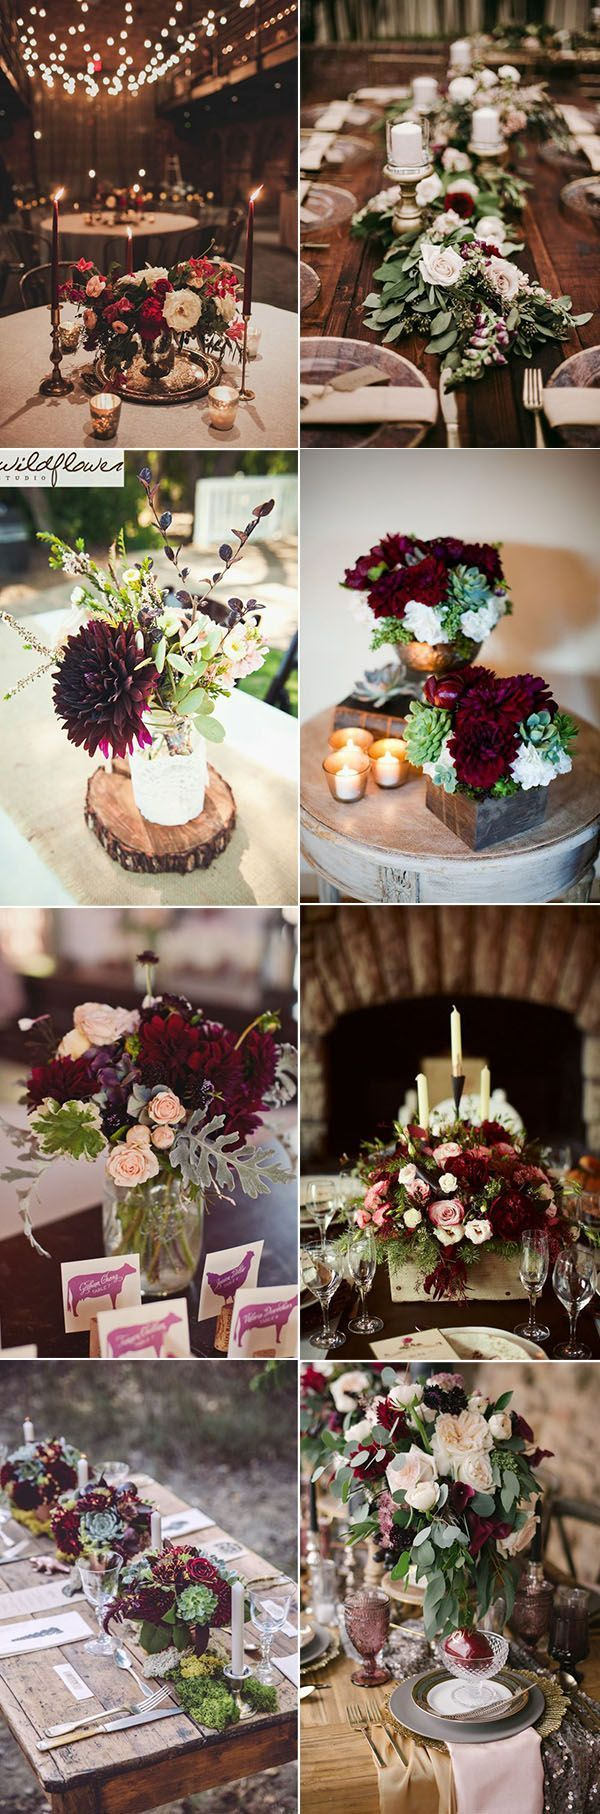 Beautiful burgundy wedding centerpieces ideas for any